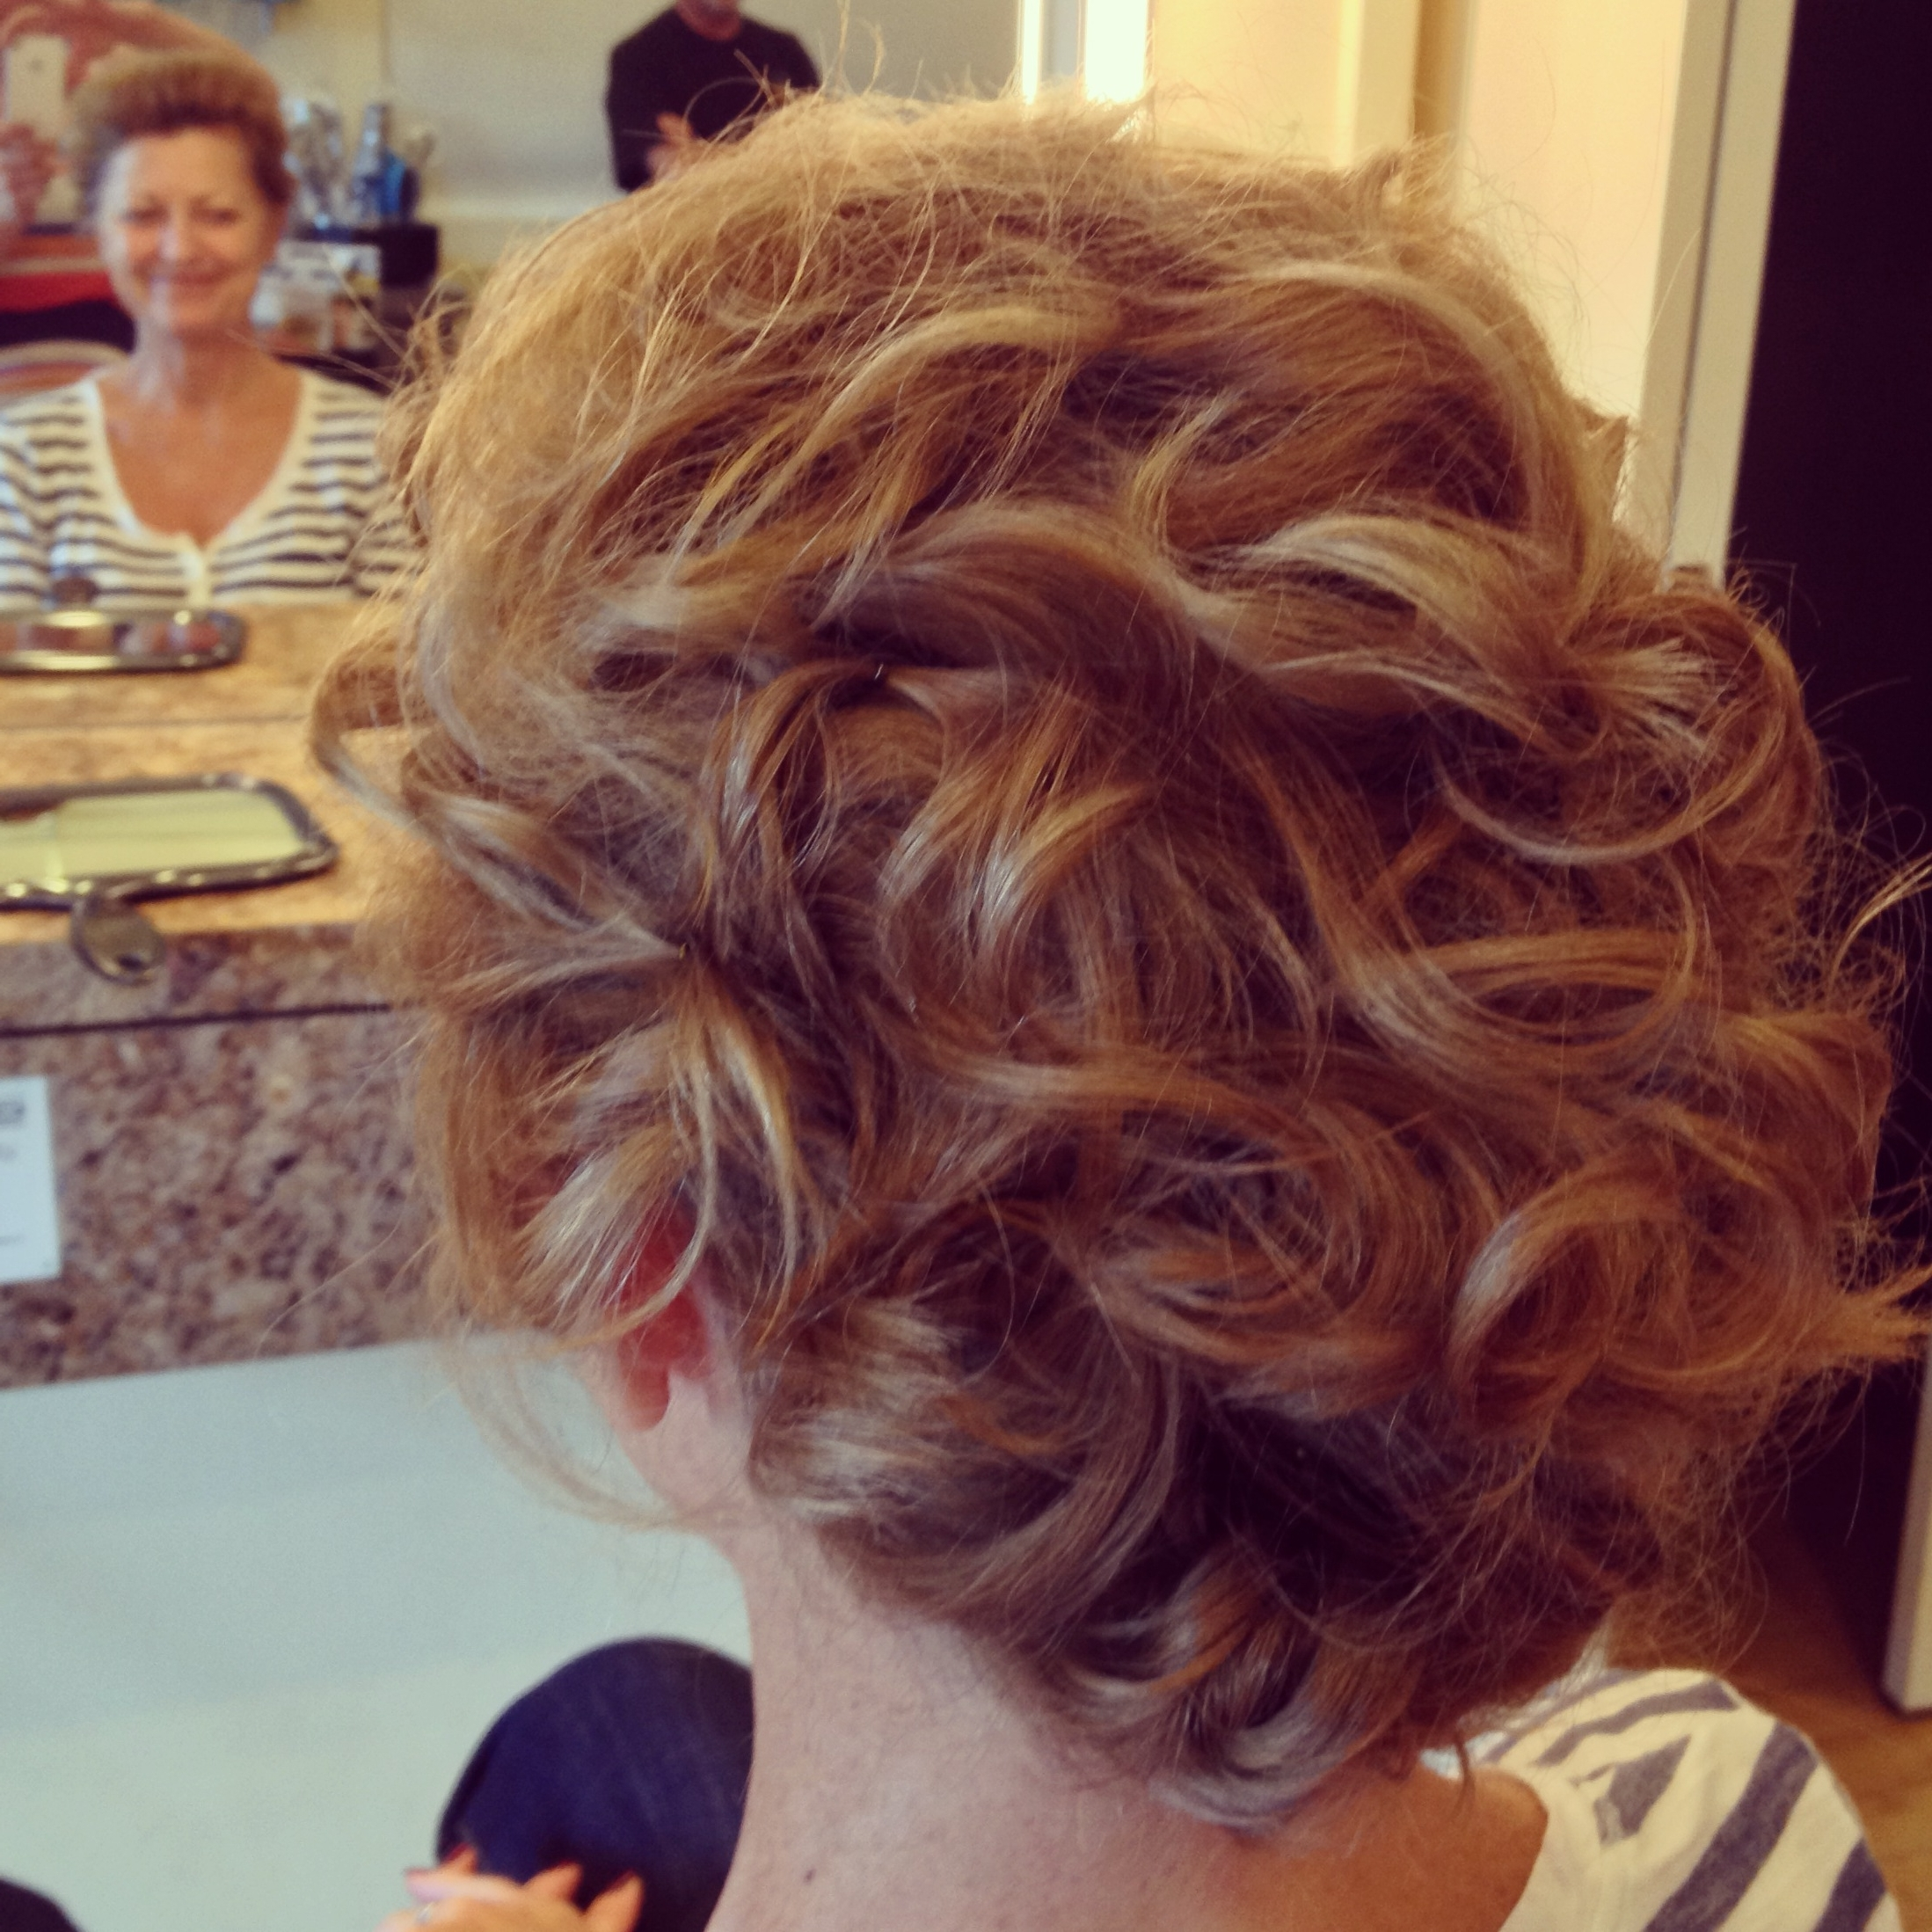 Soft Updo For Short Hair At Haircarrie Mammoth Lakes | Luxury With Soft Updos For Short Hair (View 10 of 15)